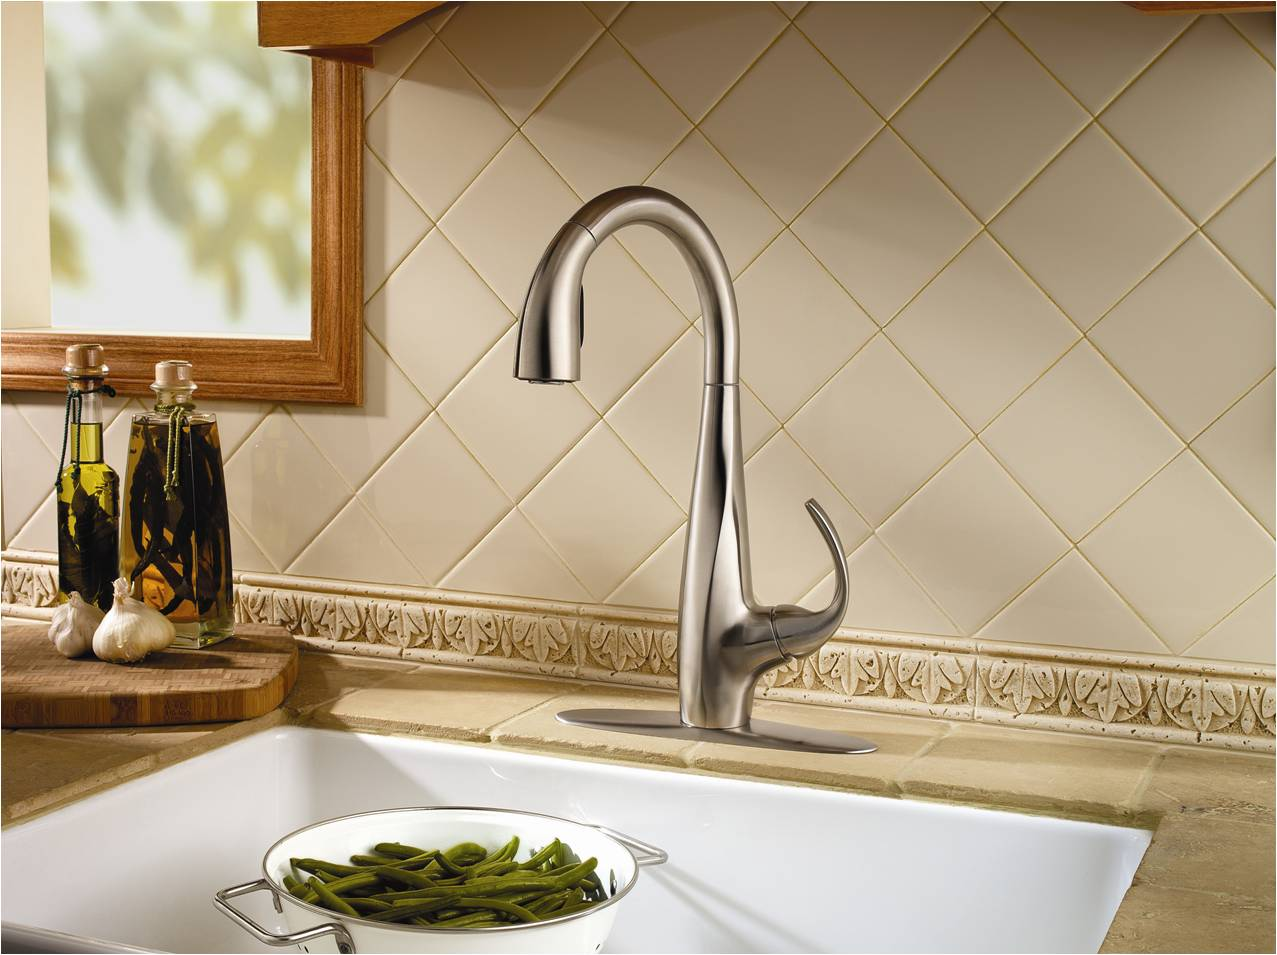 Smaller Commercial Pull Down Faucet Kitchen